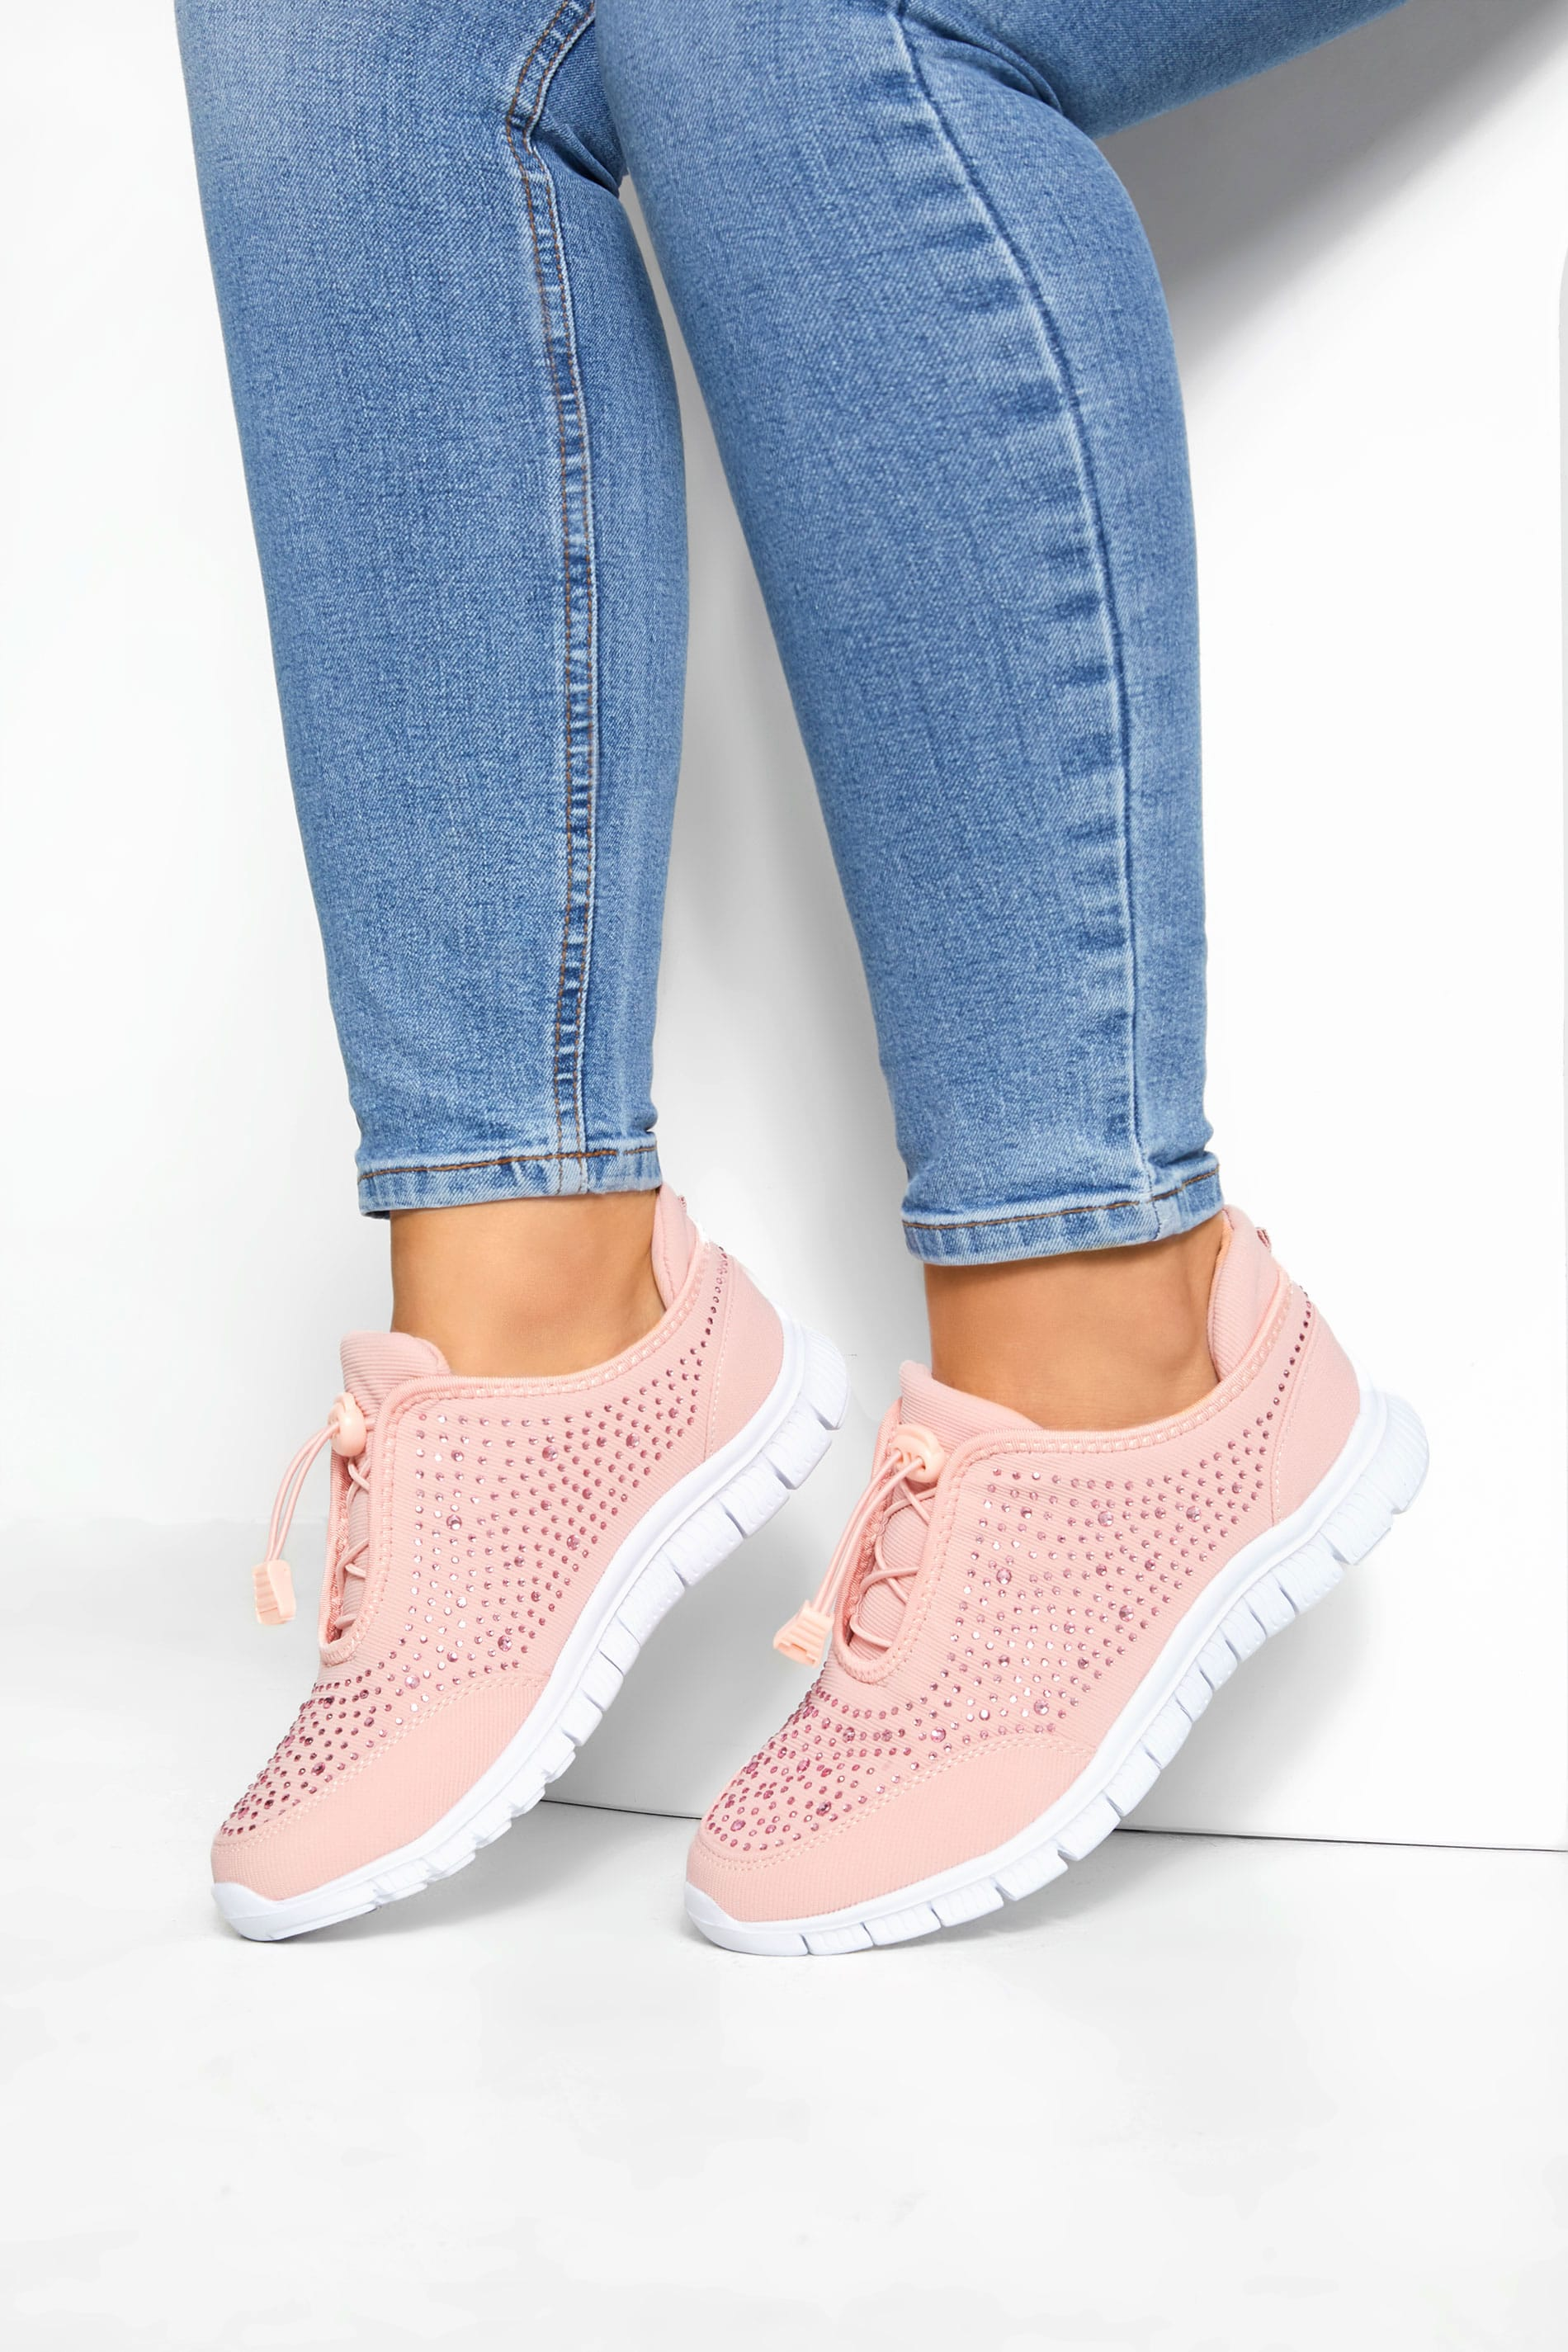 Yours Pink Embellished Trainers In Extra Wide Fit